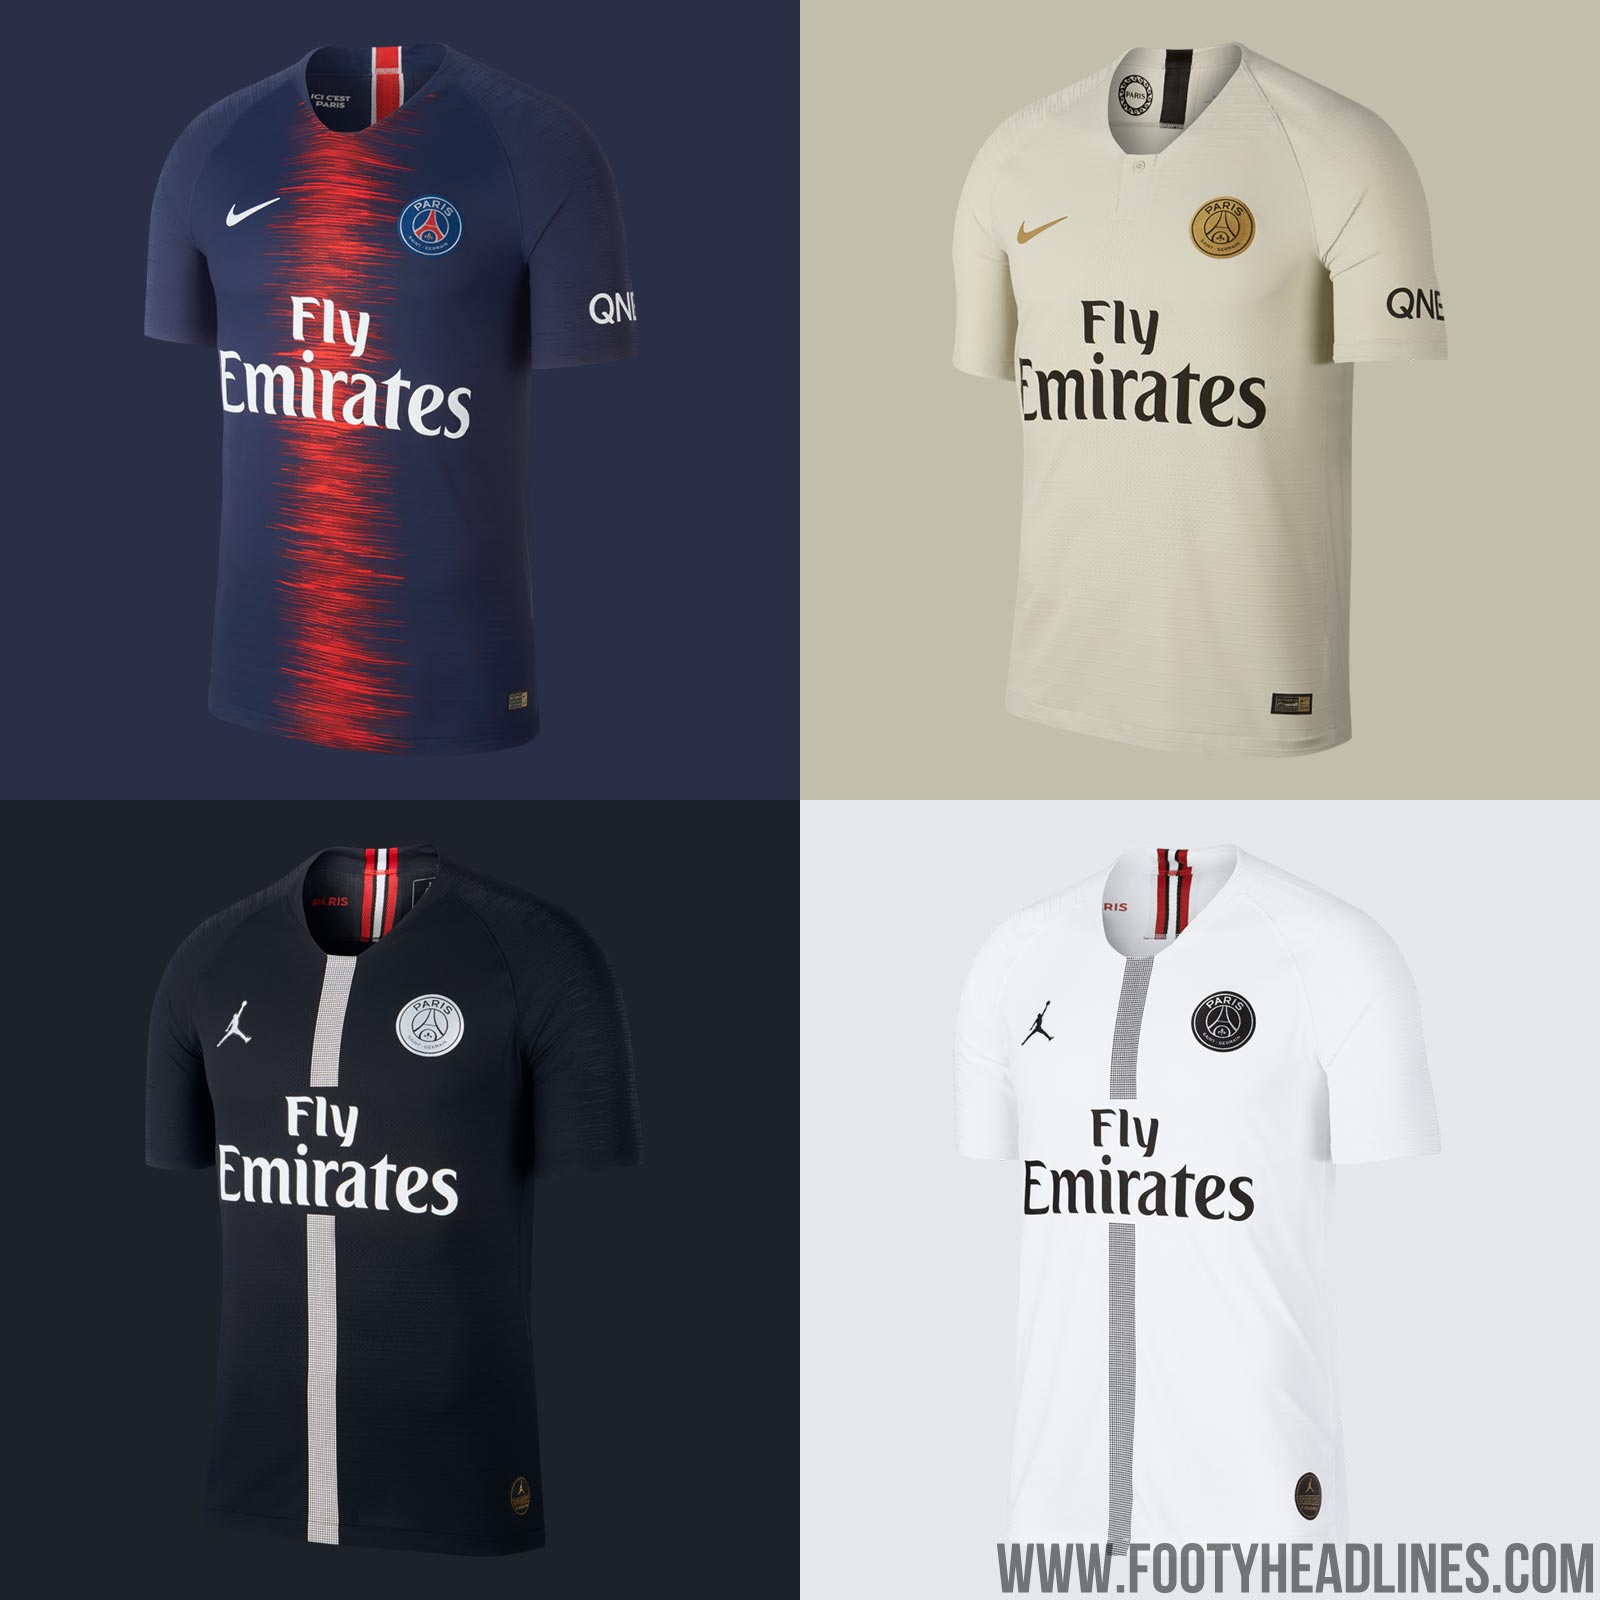 Special Jordan Chamions League Kit Coming In 2020 Here Is Why Psg Is Not Wearing The Red Jordan Kit In Champions League As First Choice Footy Headlines